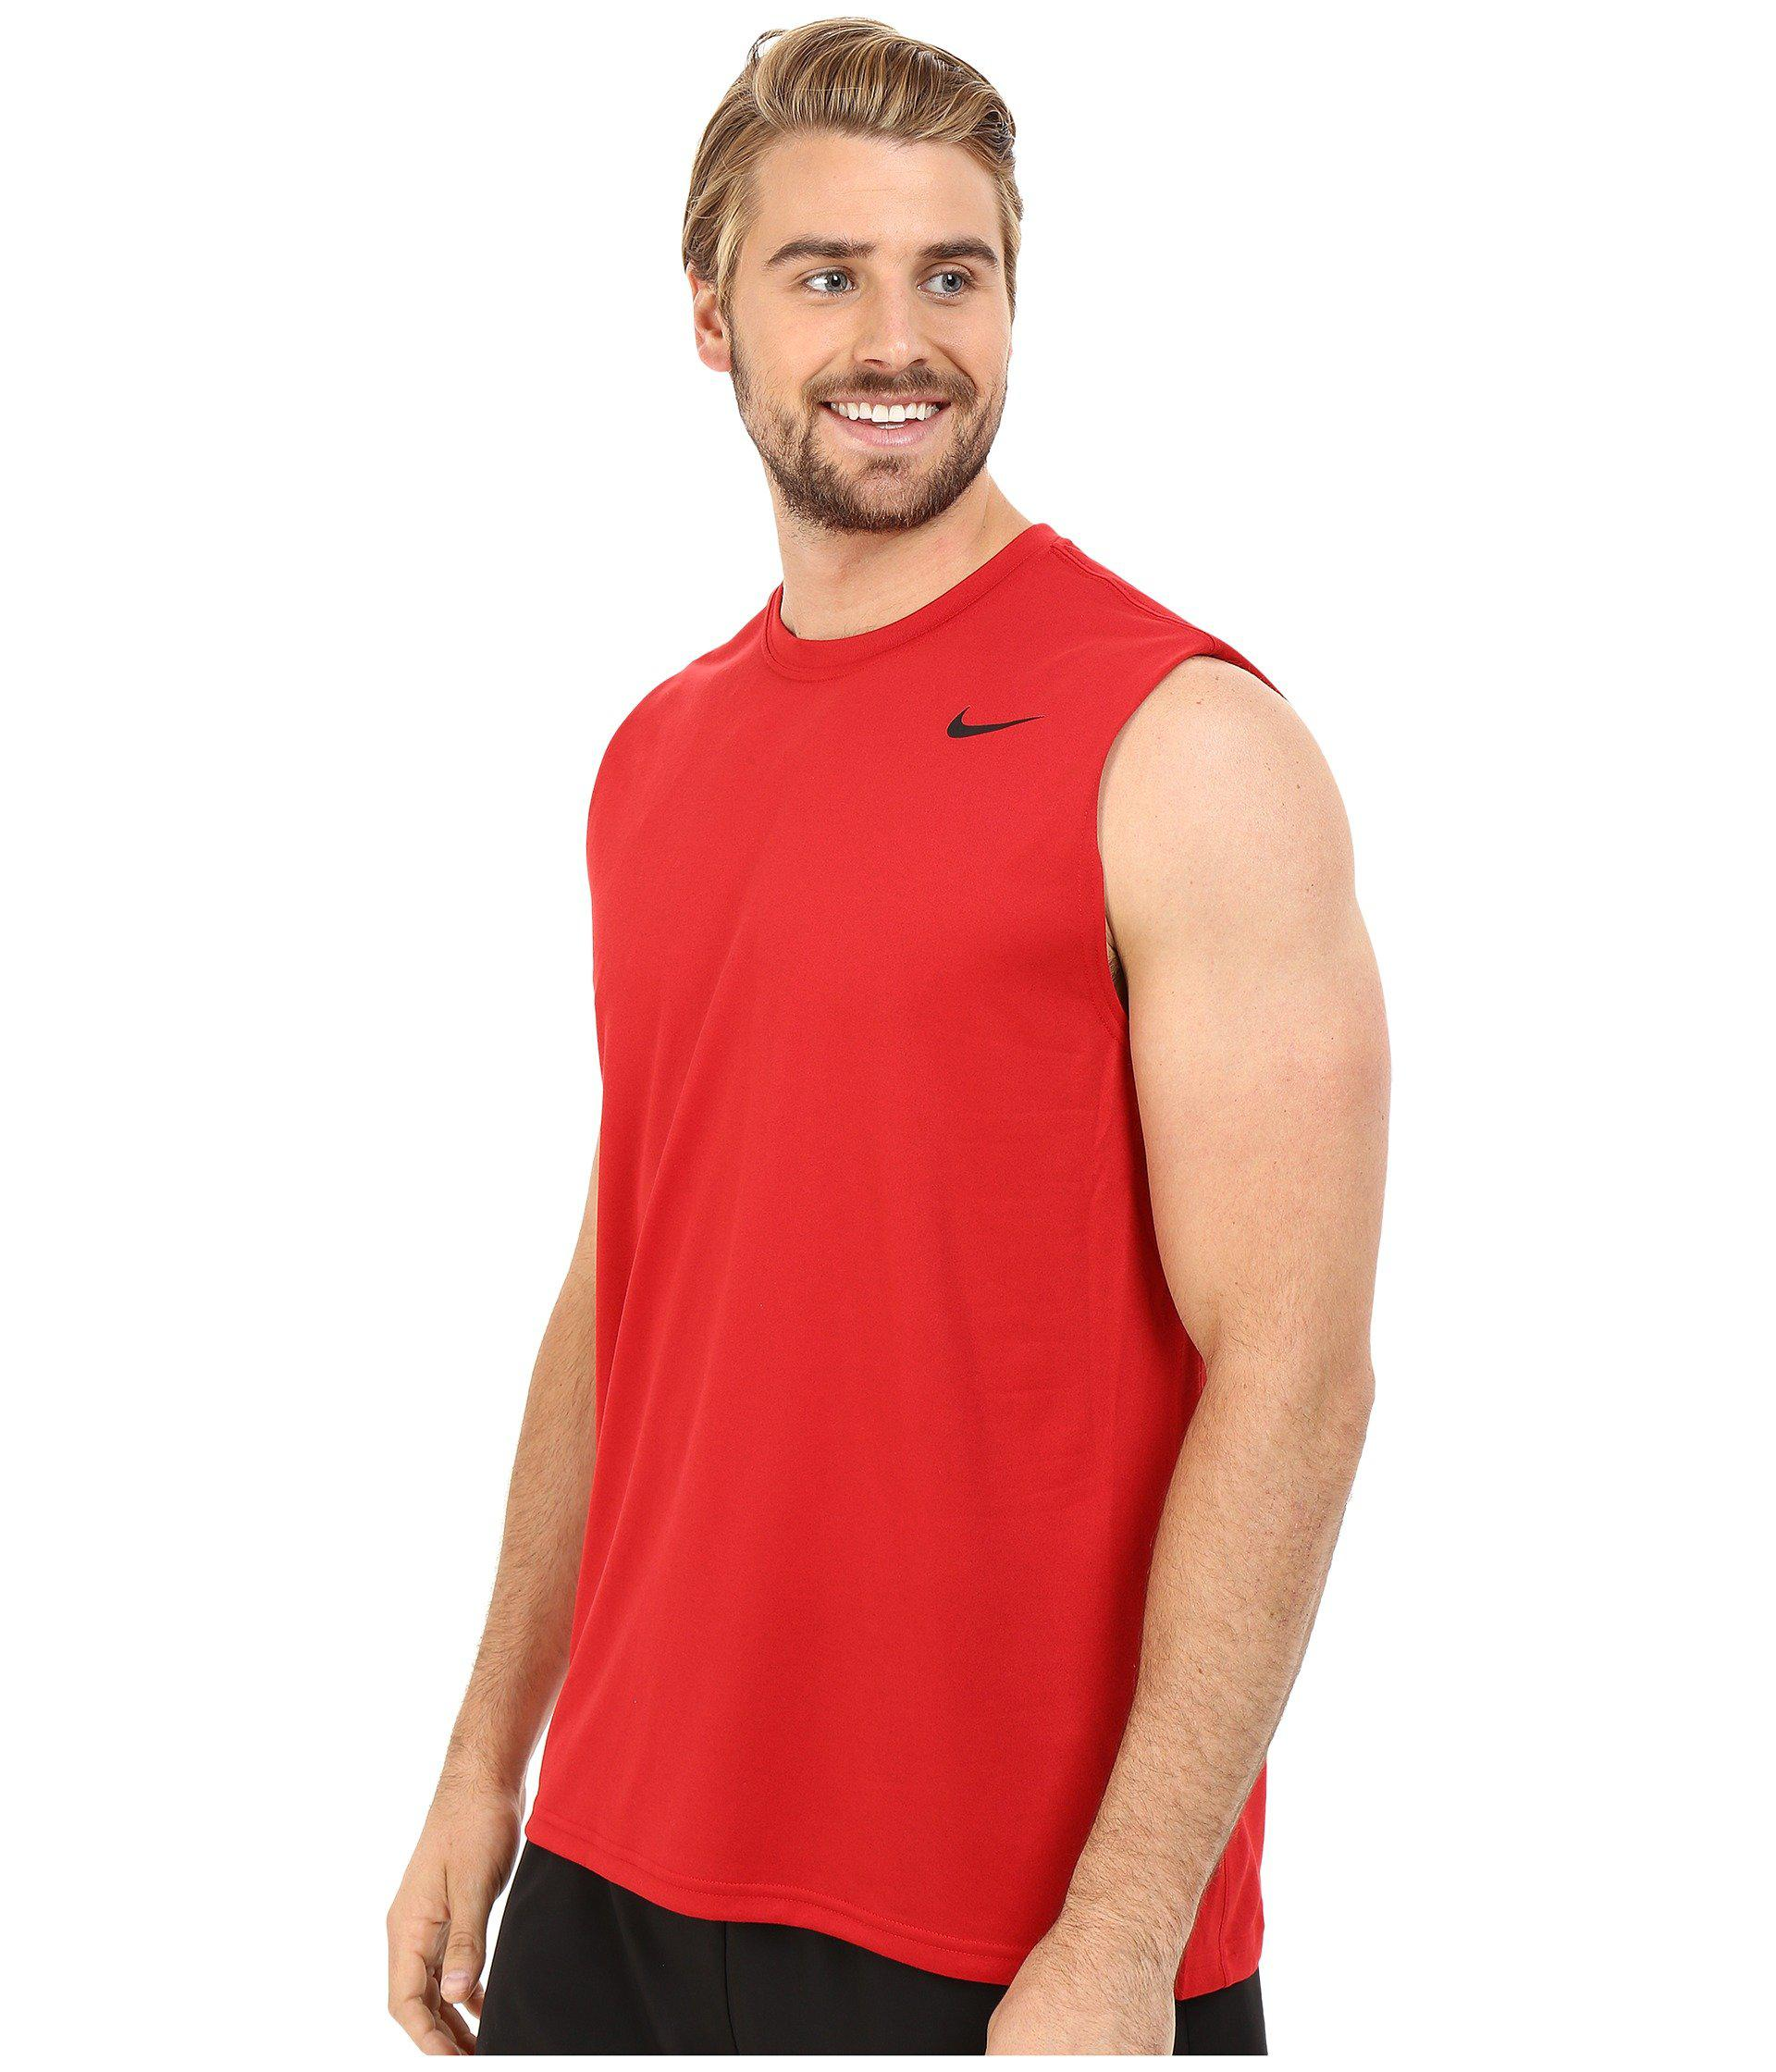 cc7745b731e23 Sleeveless Tee Gym – Rockwall Auction